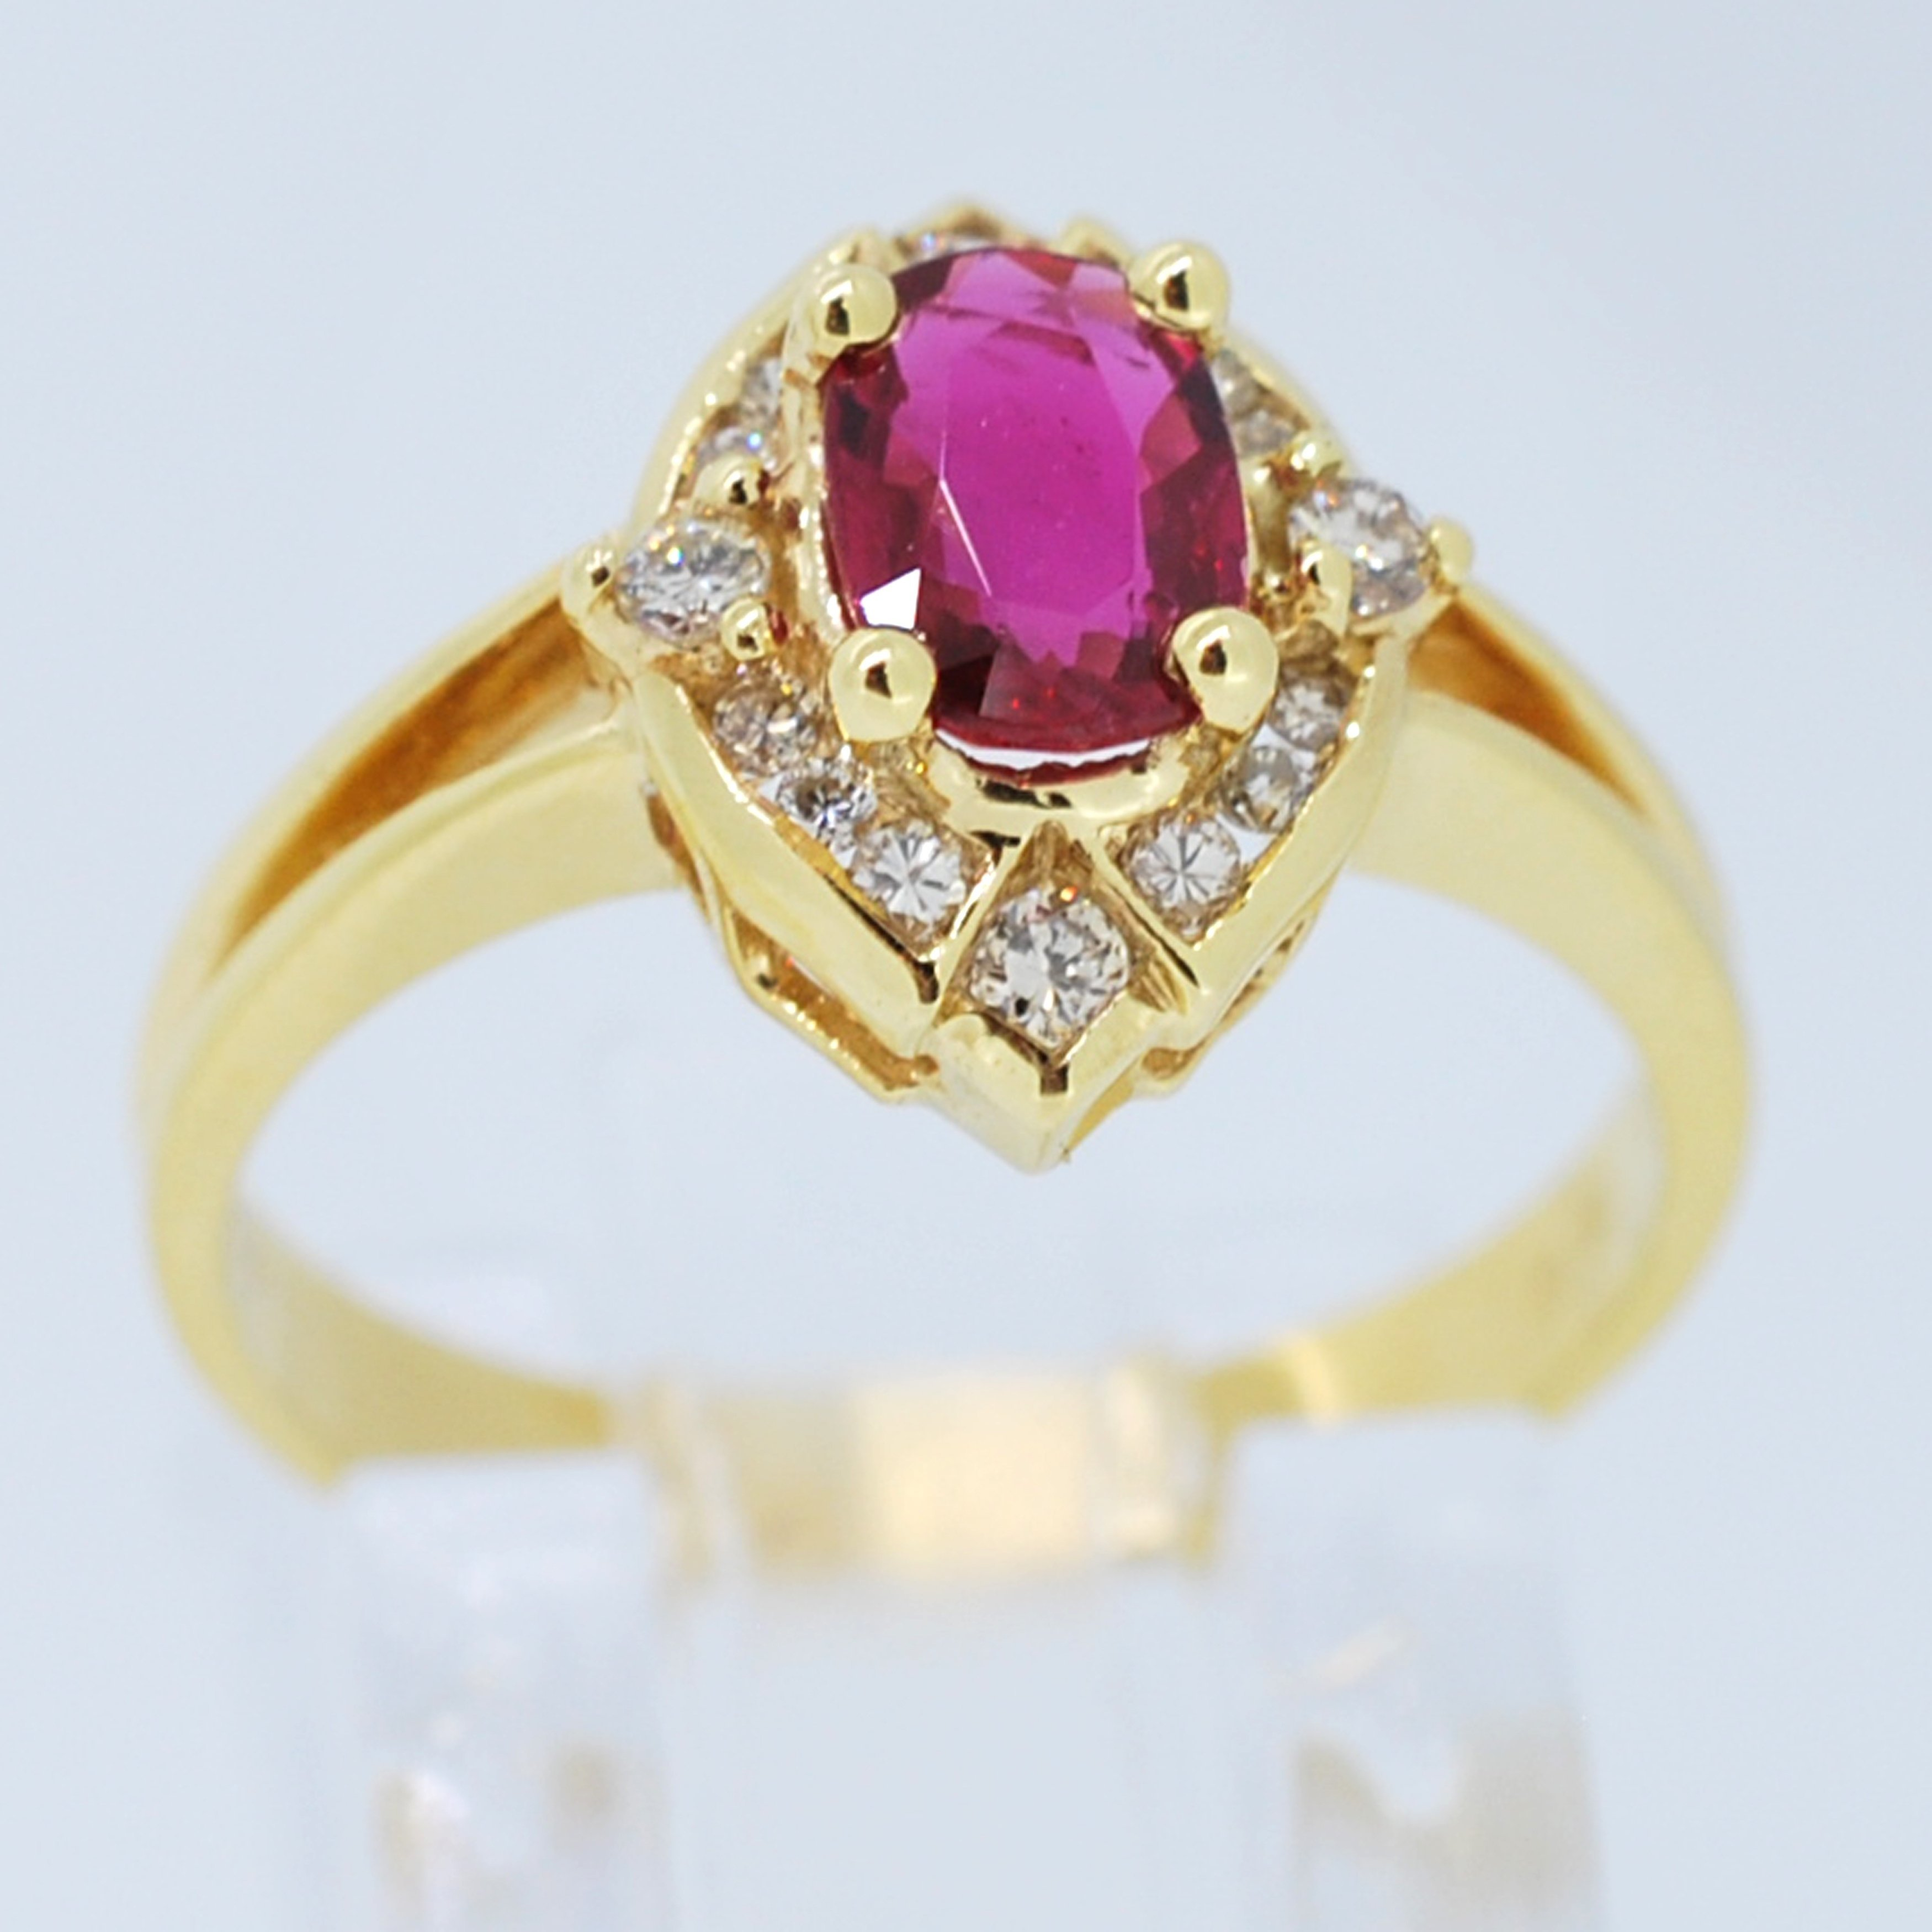 Kabella 18kt yellow gold oval Ruby and Round Diamonds Vintage Ring from Overstock photo